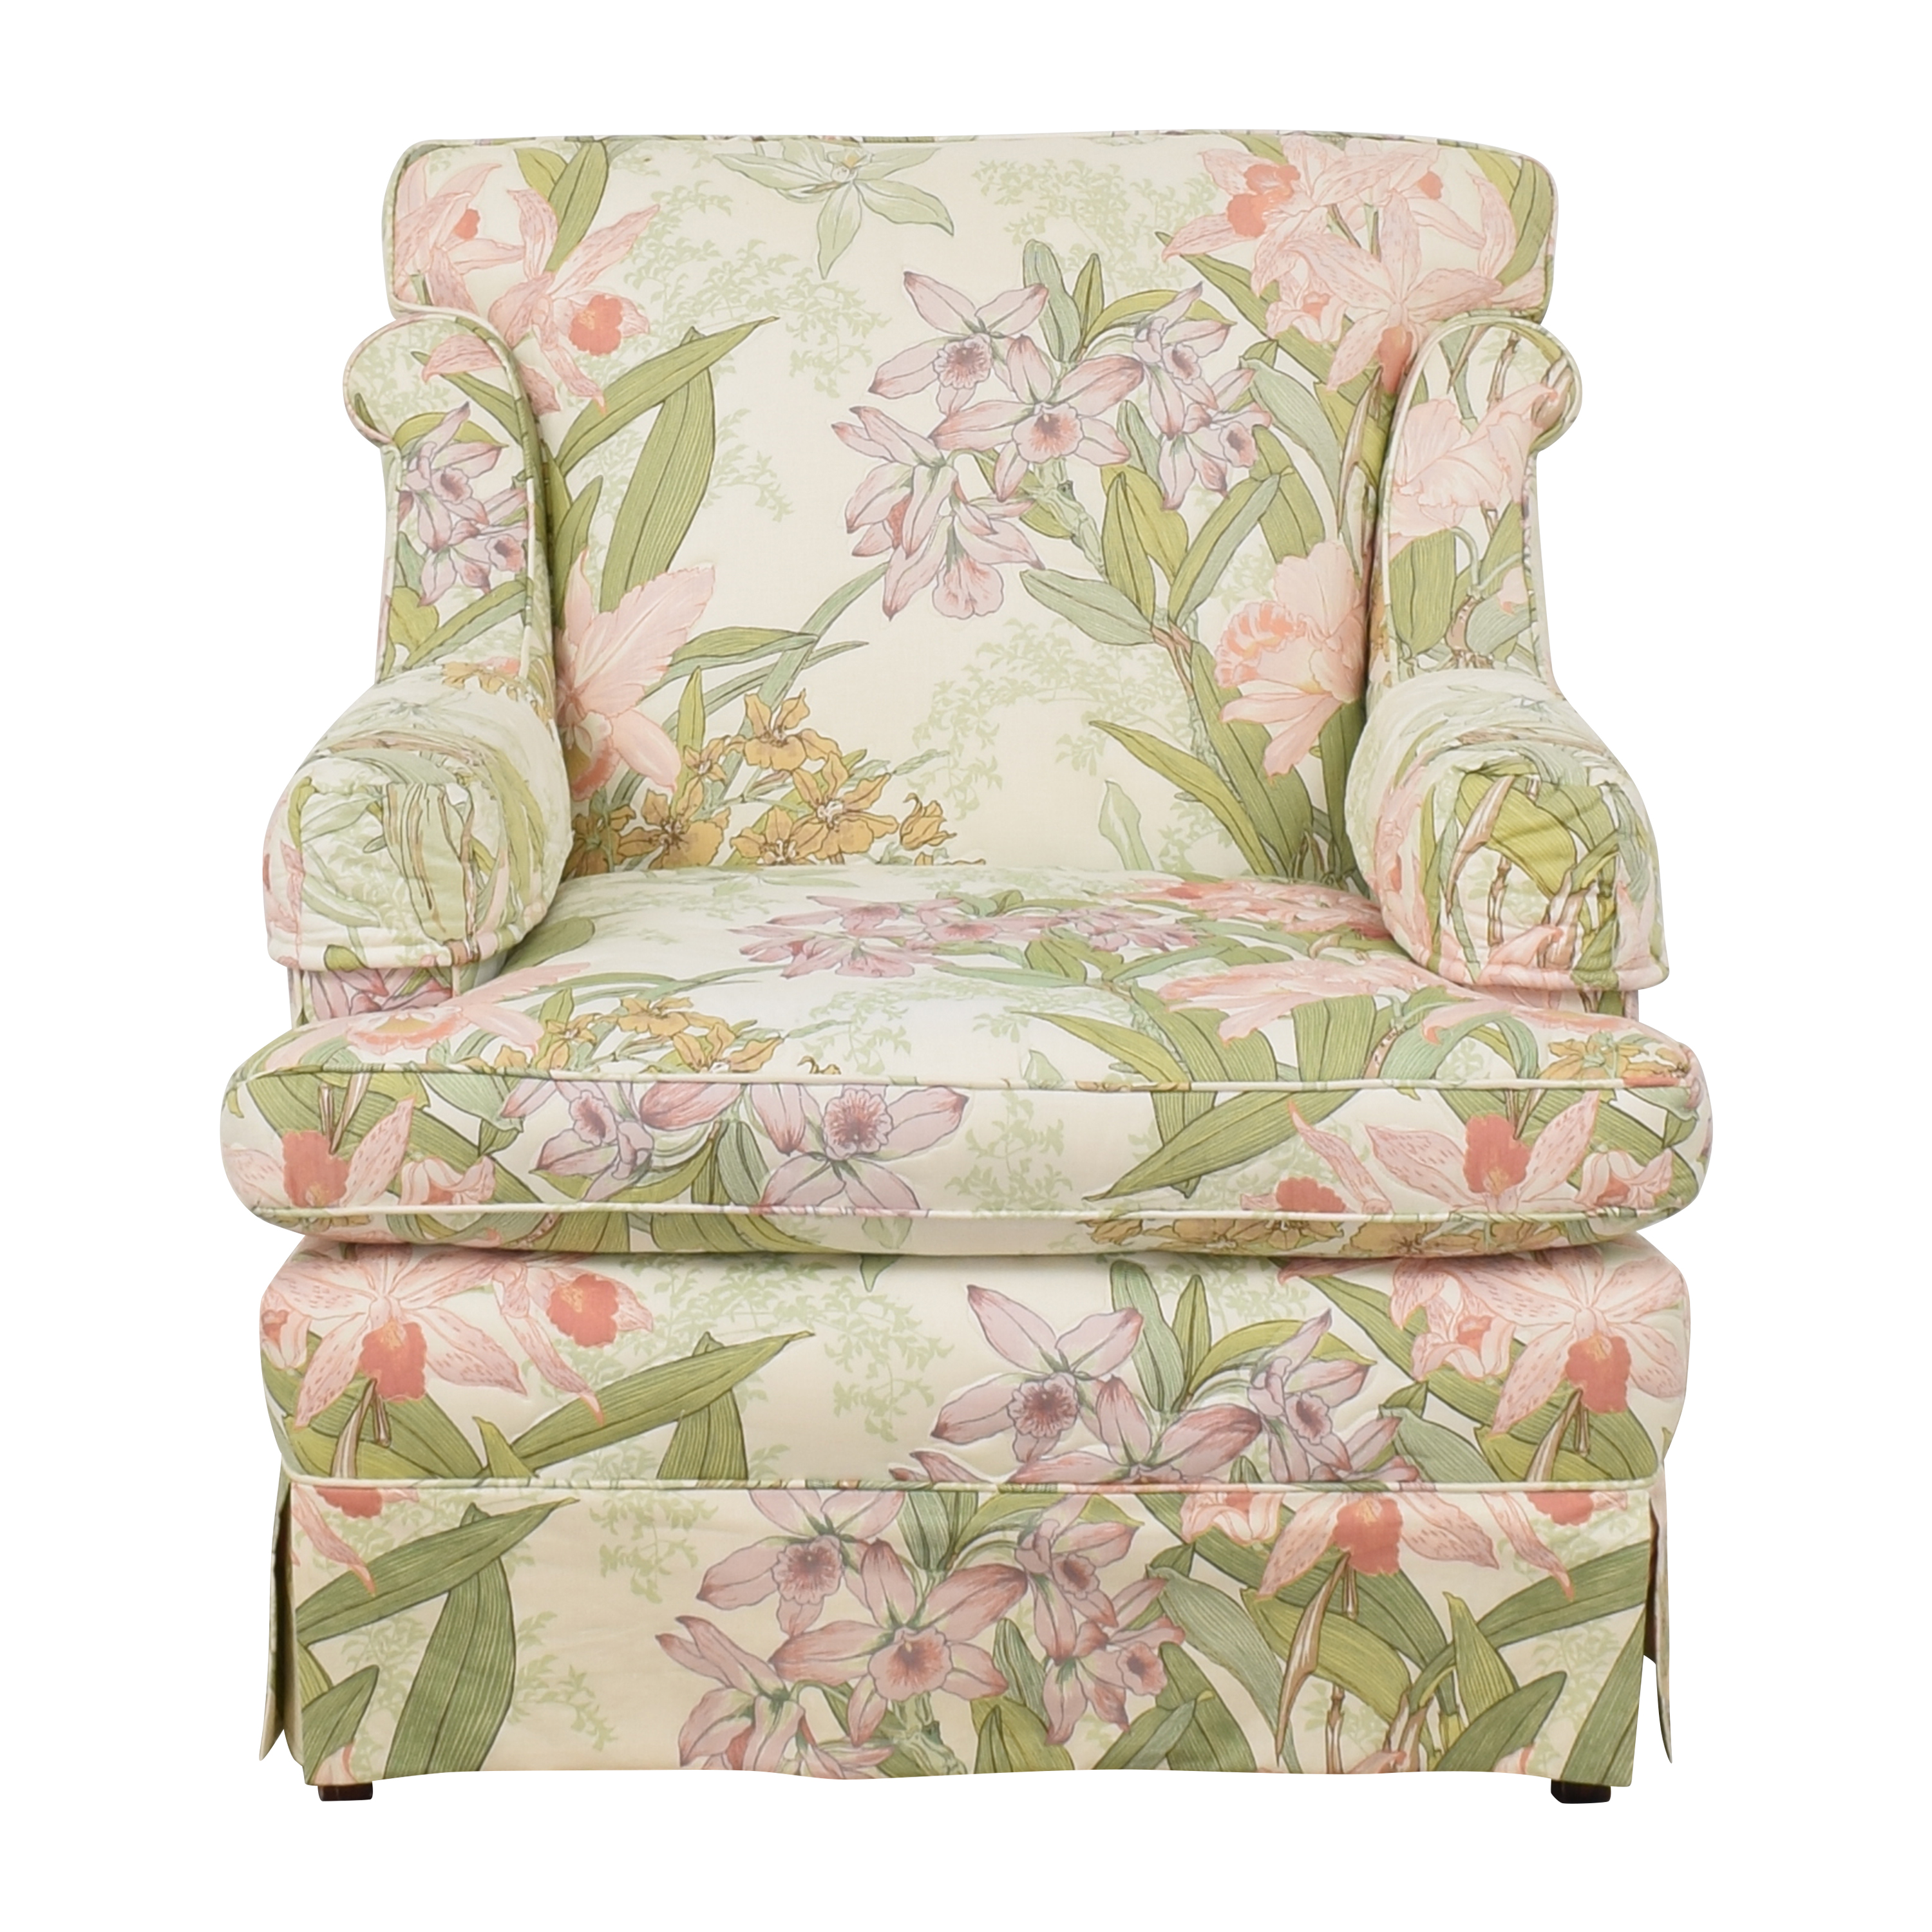 Drexel Heritage Drexel Heritage Floral Accent Chair dimensions